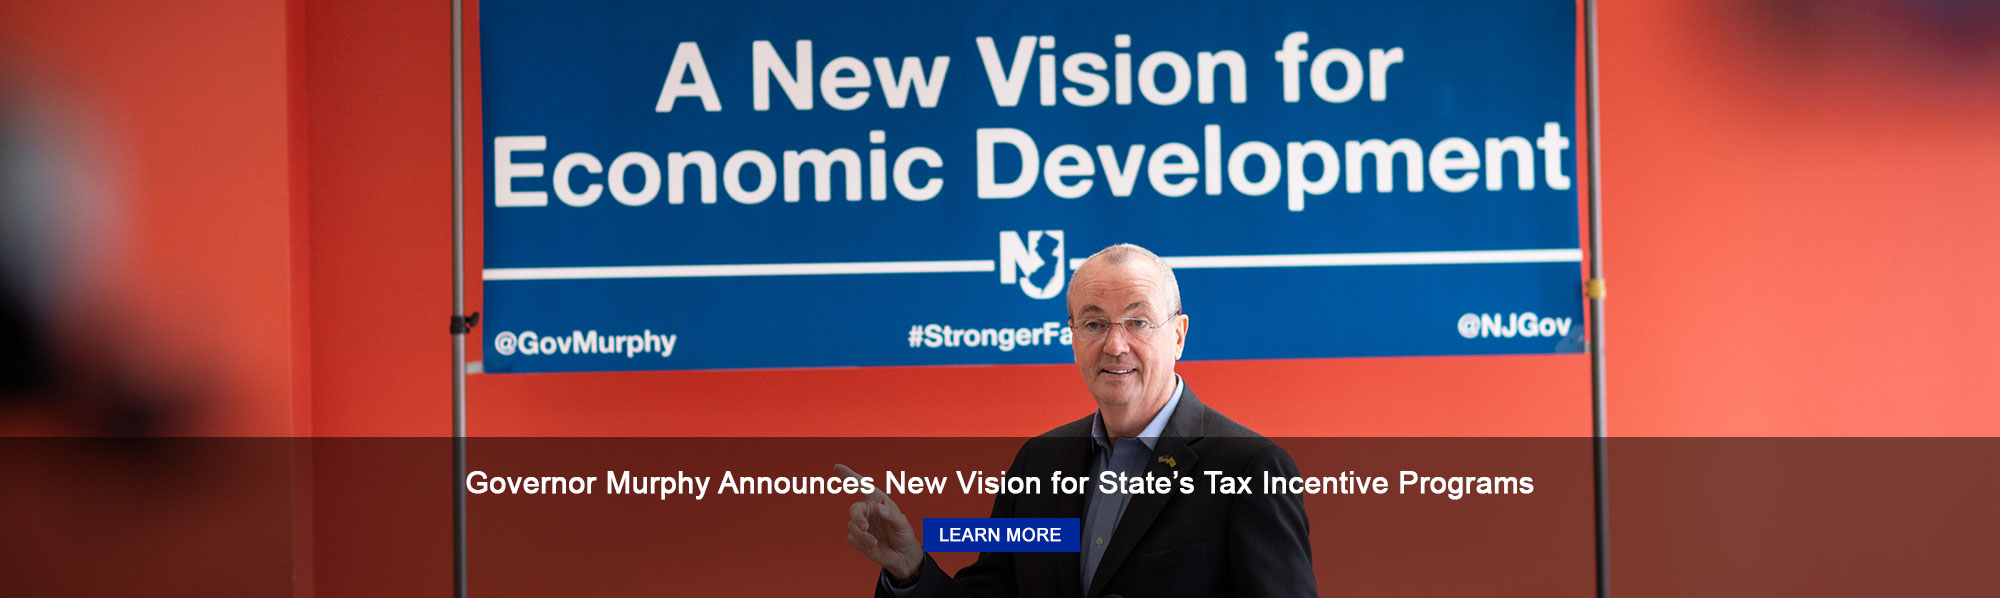 Governor Murphy Announces New Vision for State's Tax Incentive Programs